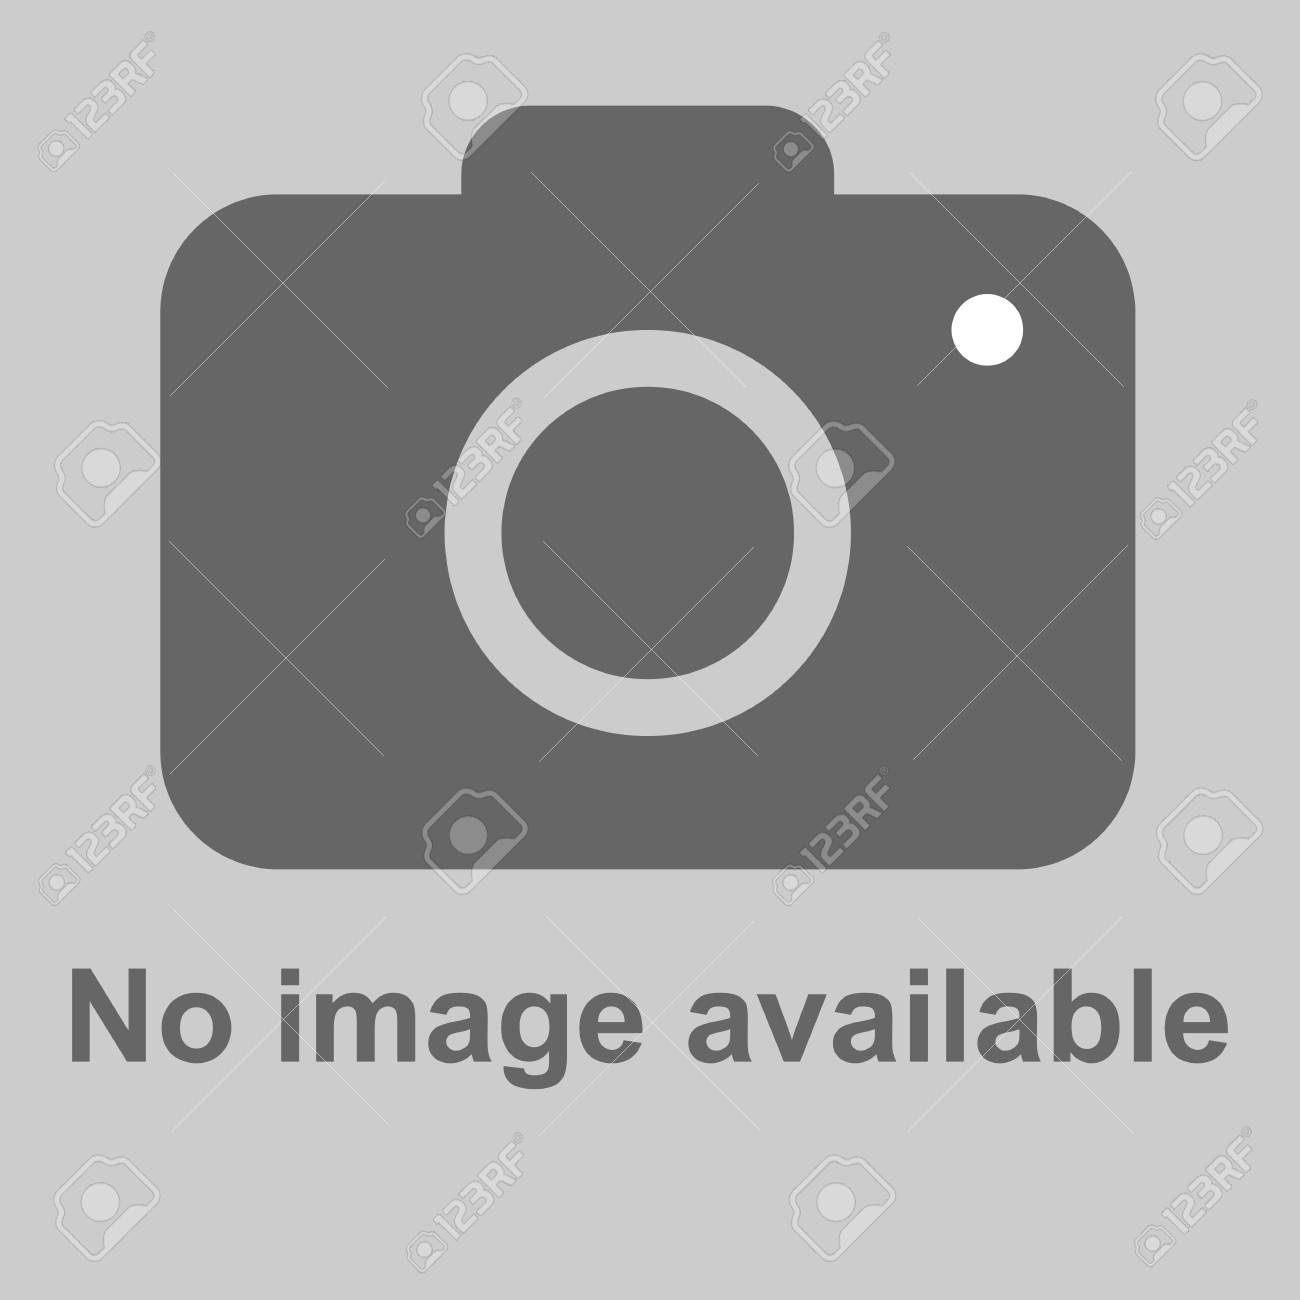 No image available icon. Flat, vector illustration - 112815932